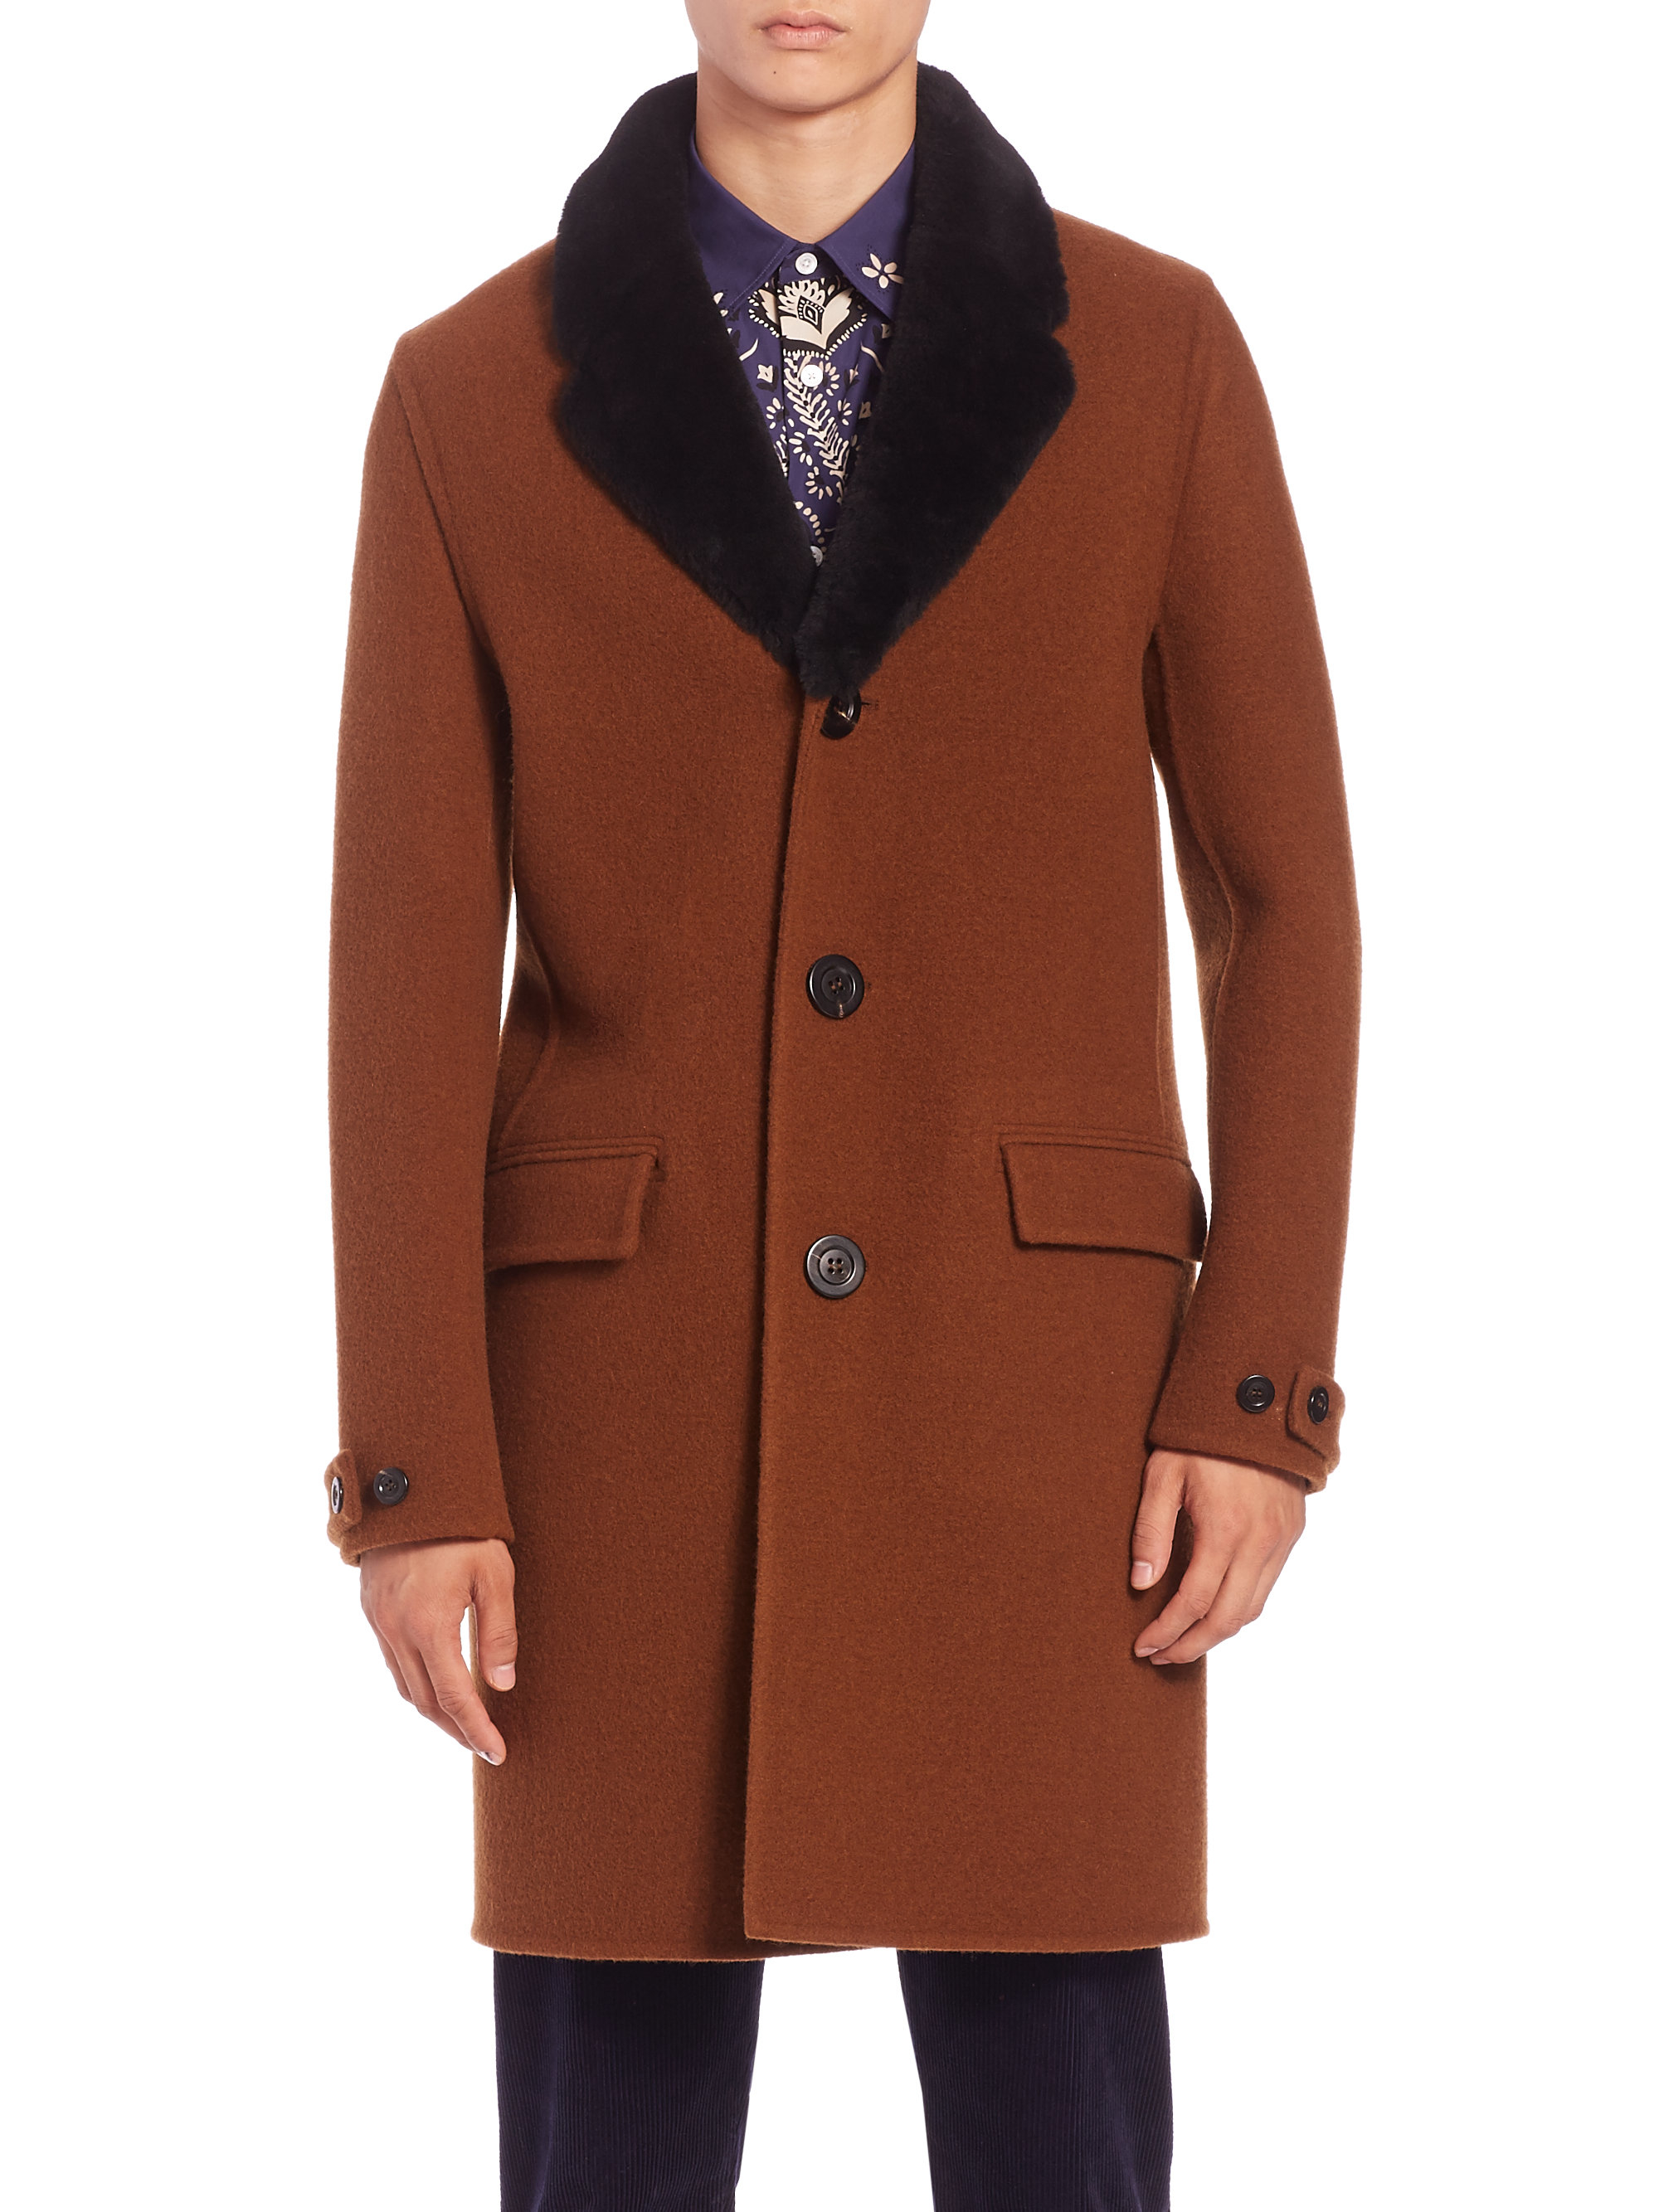 Burberry prorsum Wool & Shearling Collar Chesterfield Coat in ...